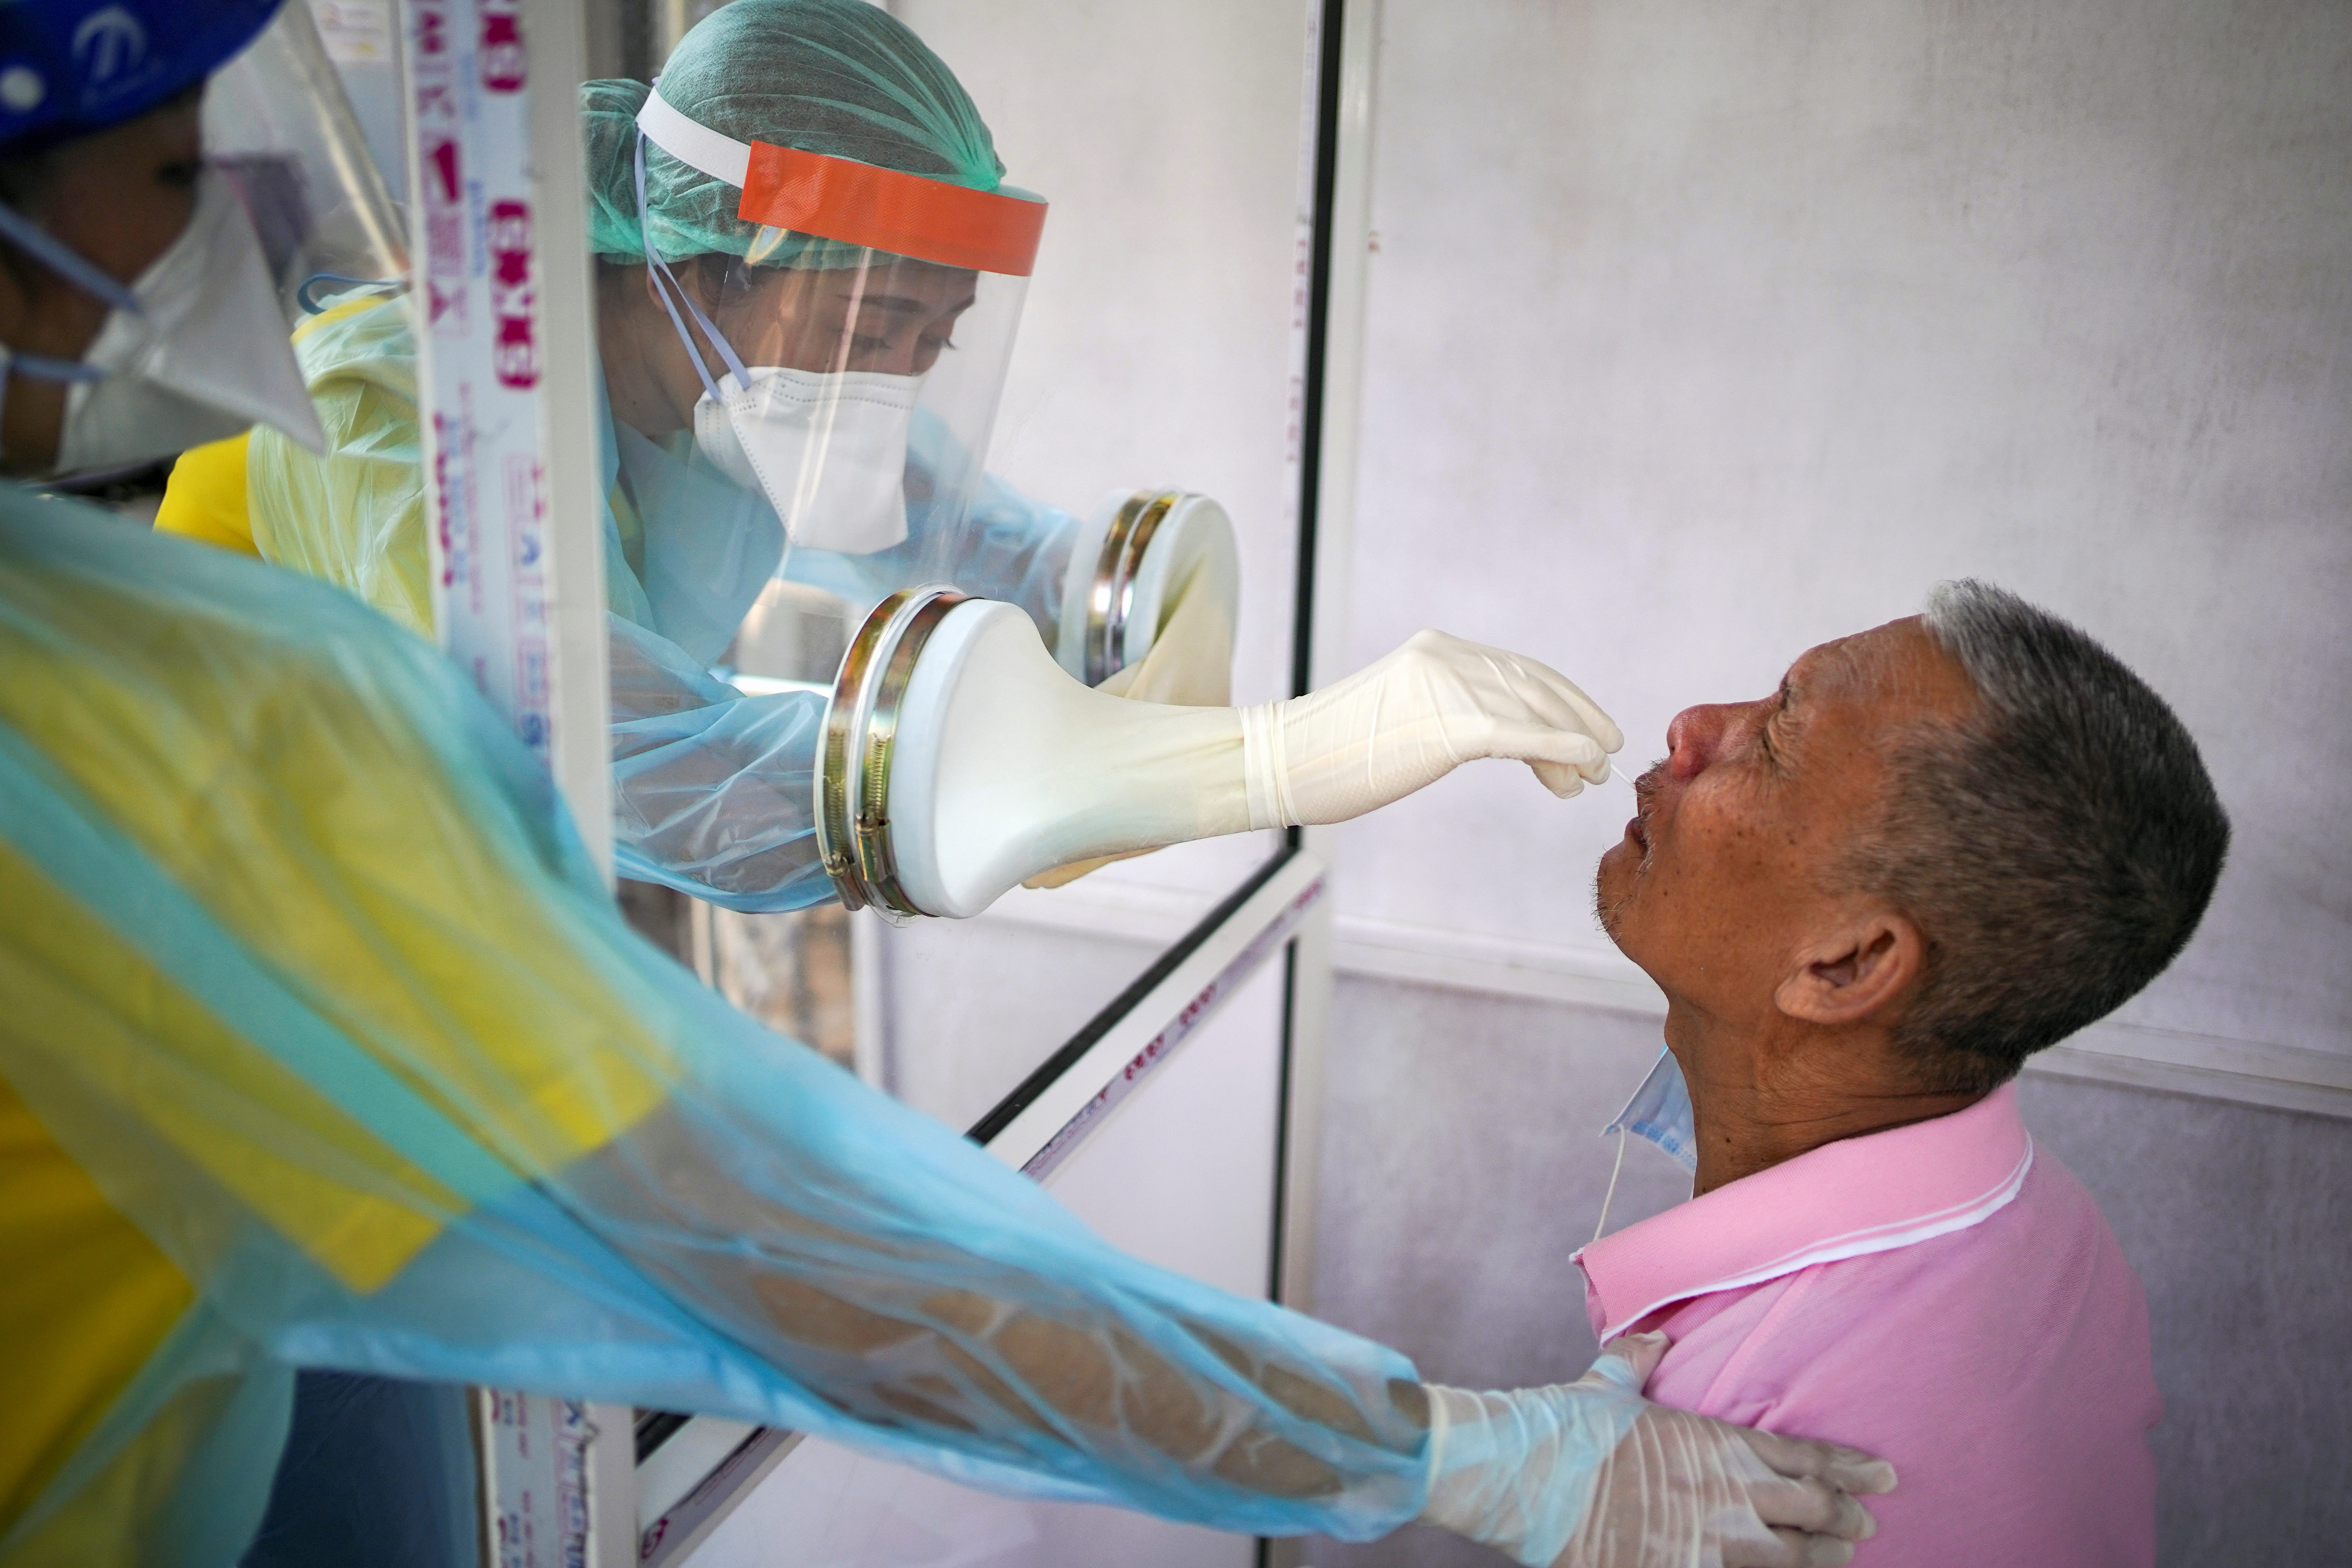 Medical personnel perform a nose swab test on a local resident of a community in Bangkok, amid the coronavirus disease (COVID-19) outbreak in Thailand, April 28, 2020. REUTERS/Athit Perawongmetha/File Photo